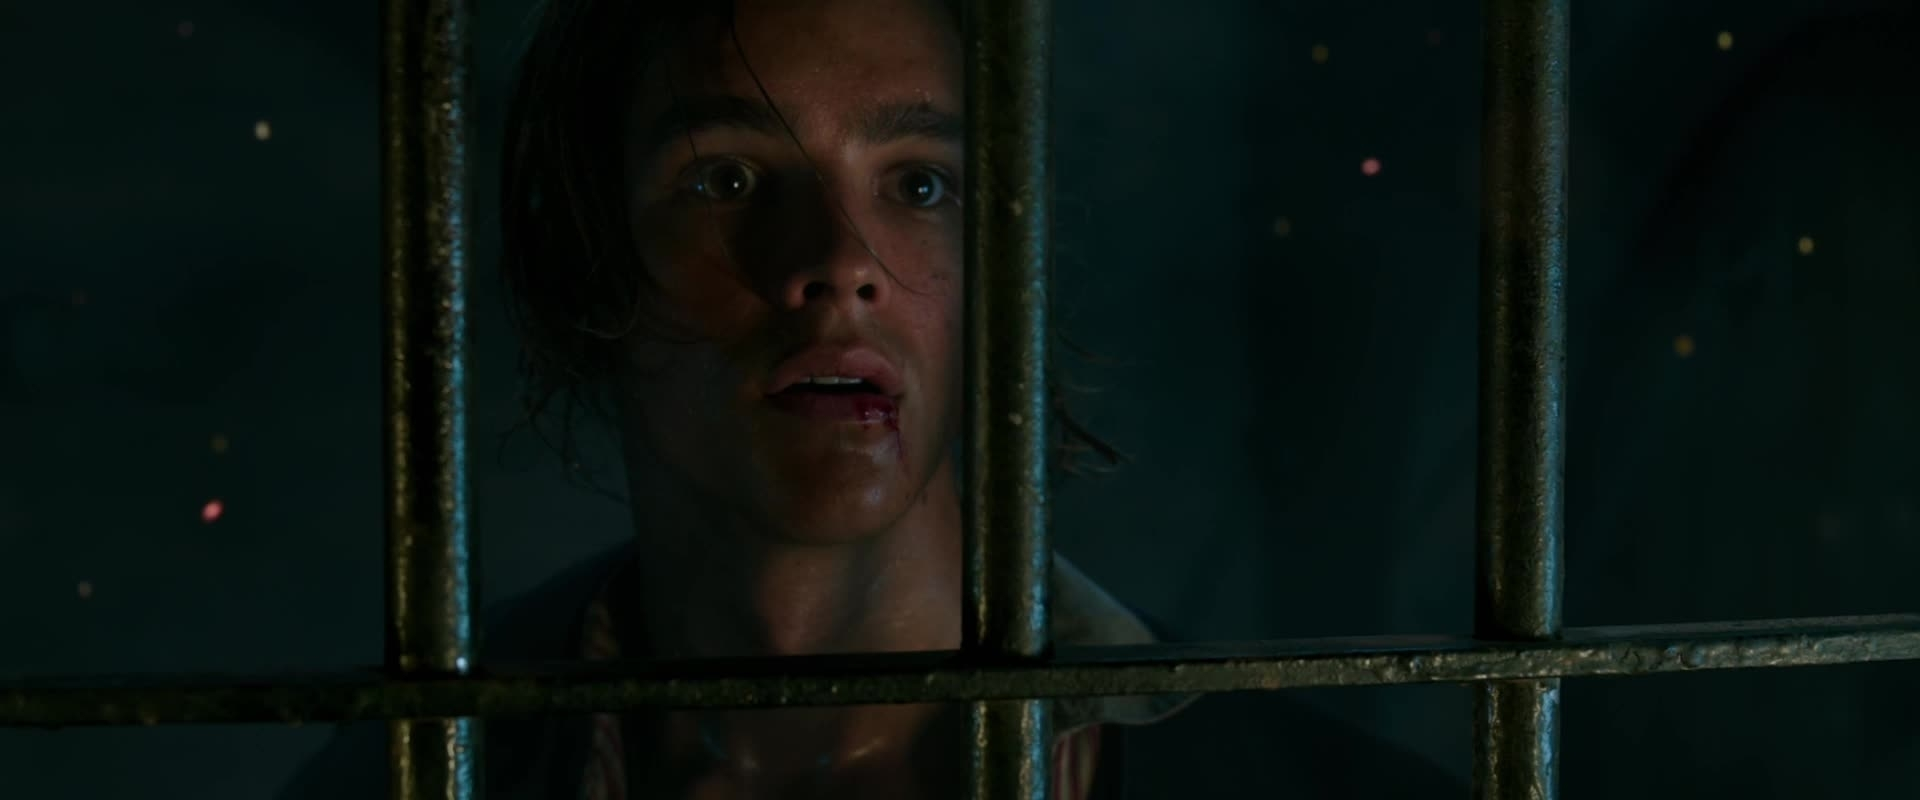 Pirates of the Caribbean: Dead Men Tell No Tales - Teaser Trailer